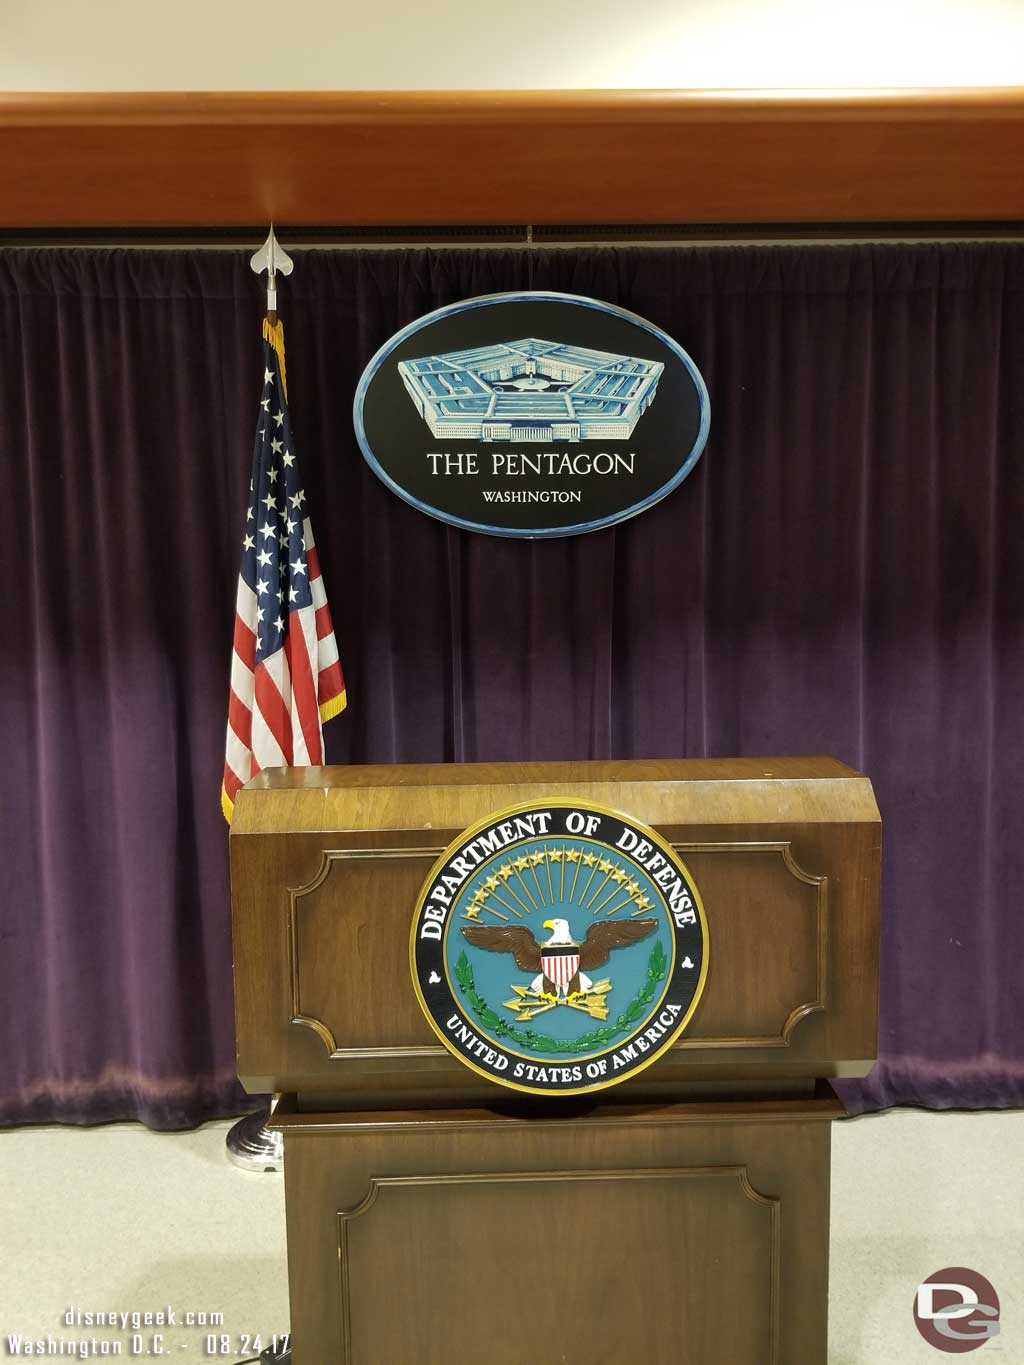 Inside the visitor waiting area is a replica of the press briefing podium that you can pose at for a picture.